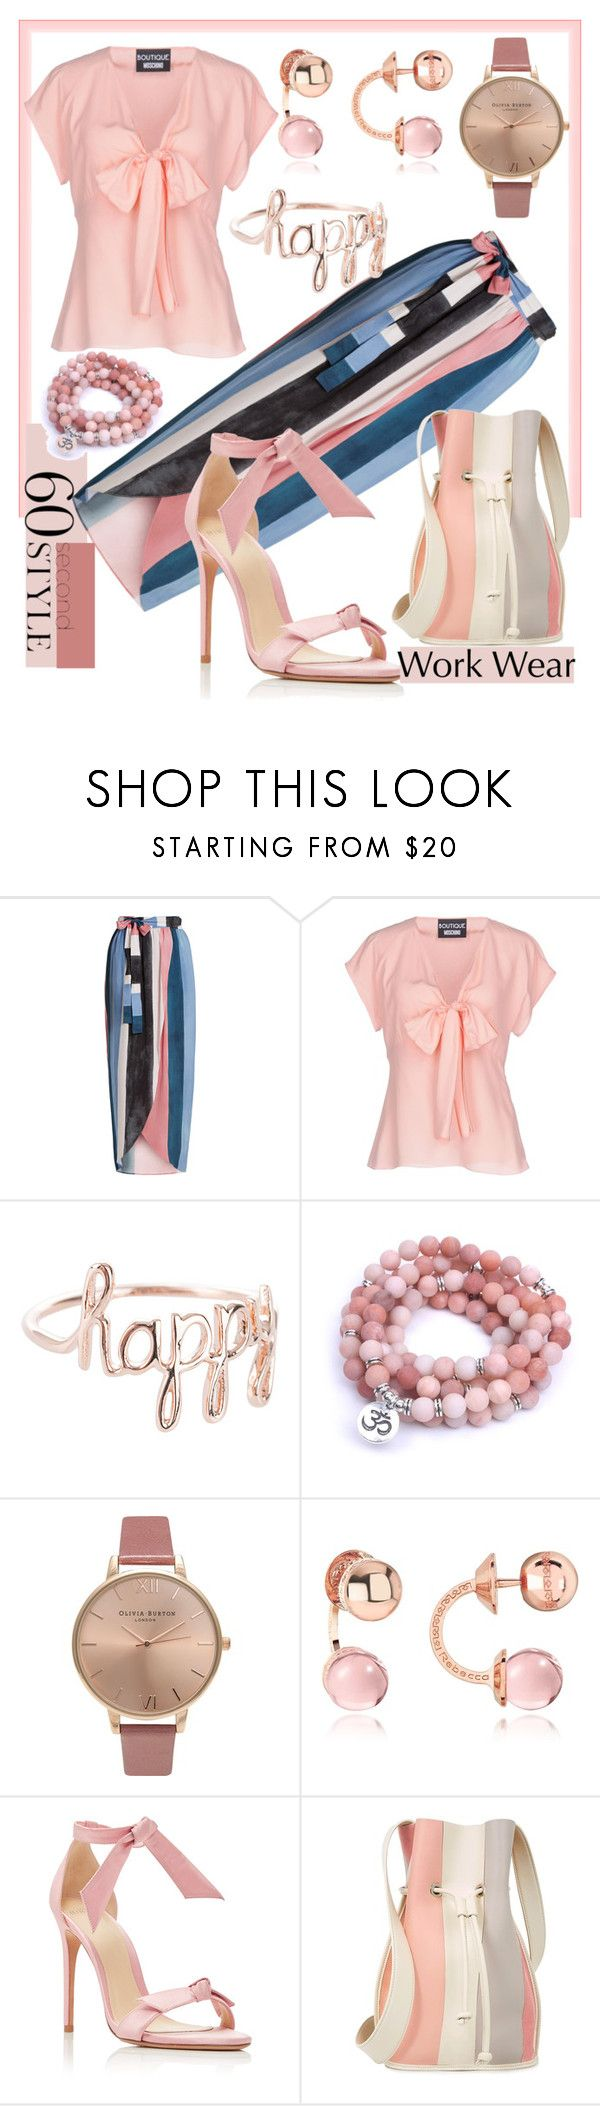 """""""60 Second Style: Work Wear"""" by mdfletch ❤ liked on Polyvore featuring Mara Hoffman, Boutique Moschino, Olivia Burton, Rebecca, Alexandre Birman, 10 Crosby Derek Lam, WorkWear and 60secondstyle"""